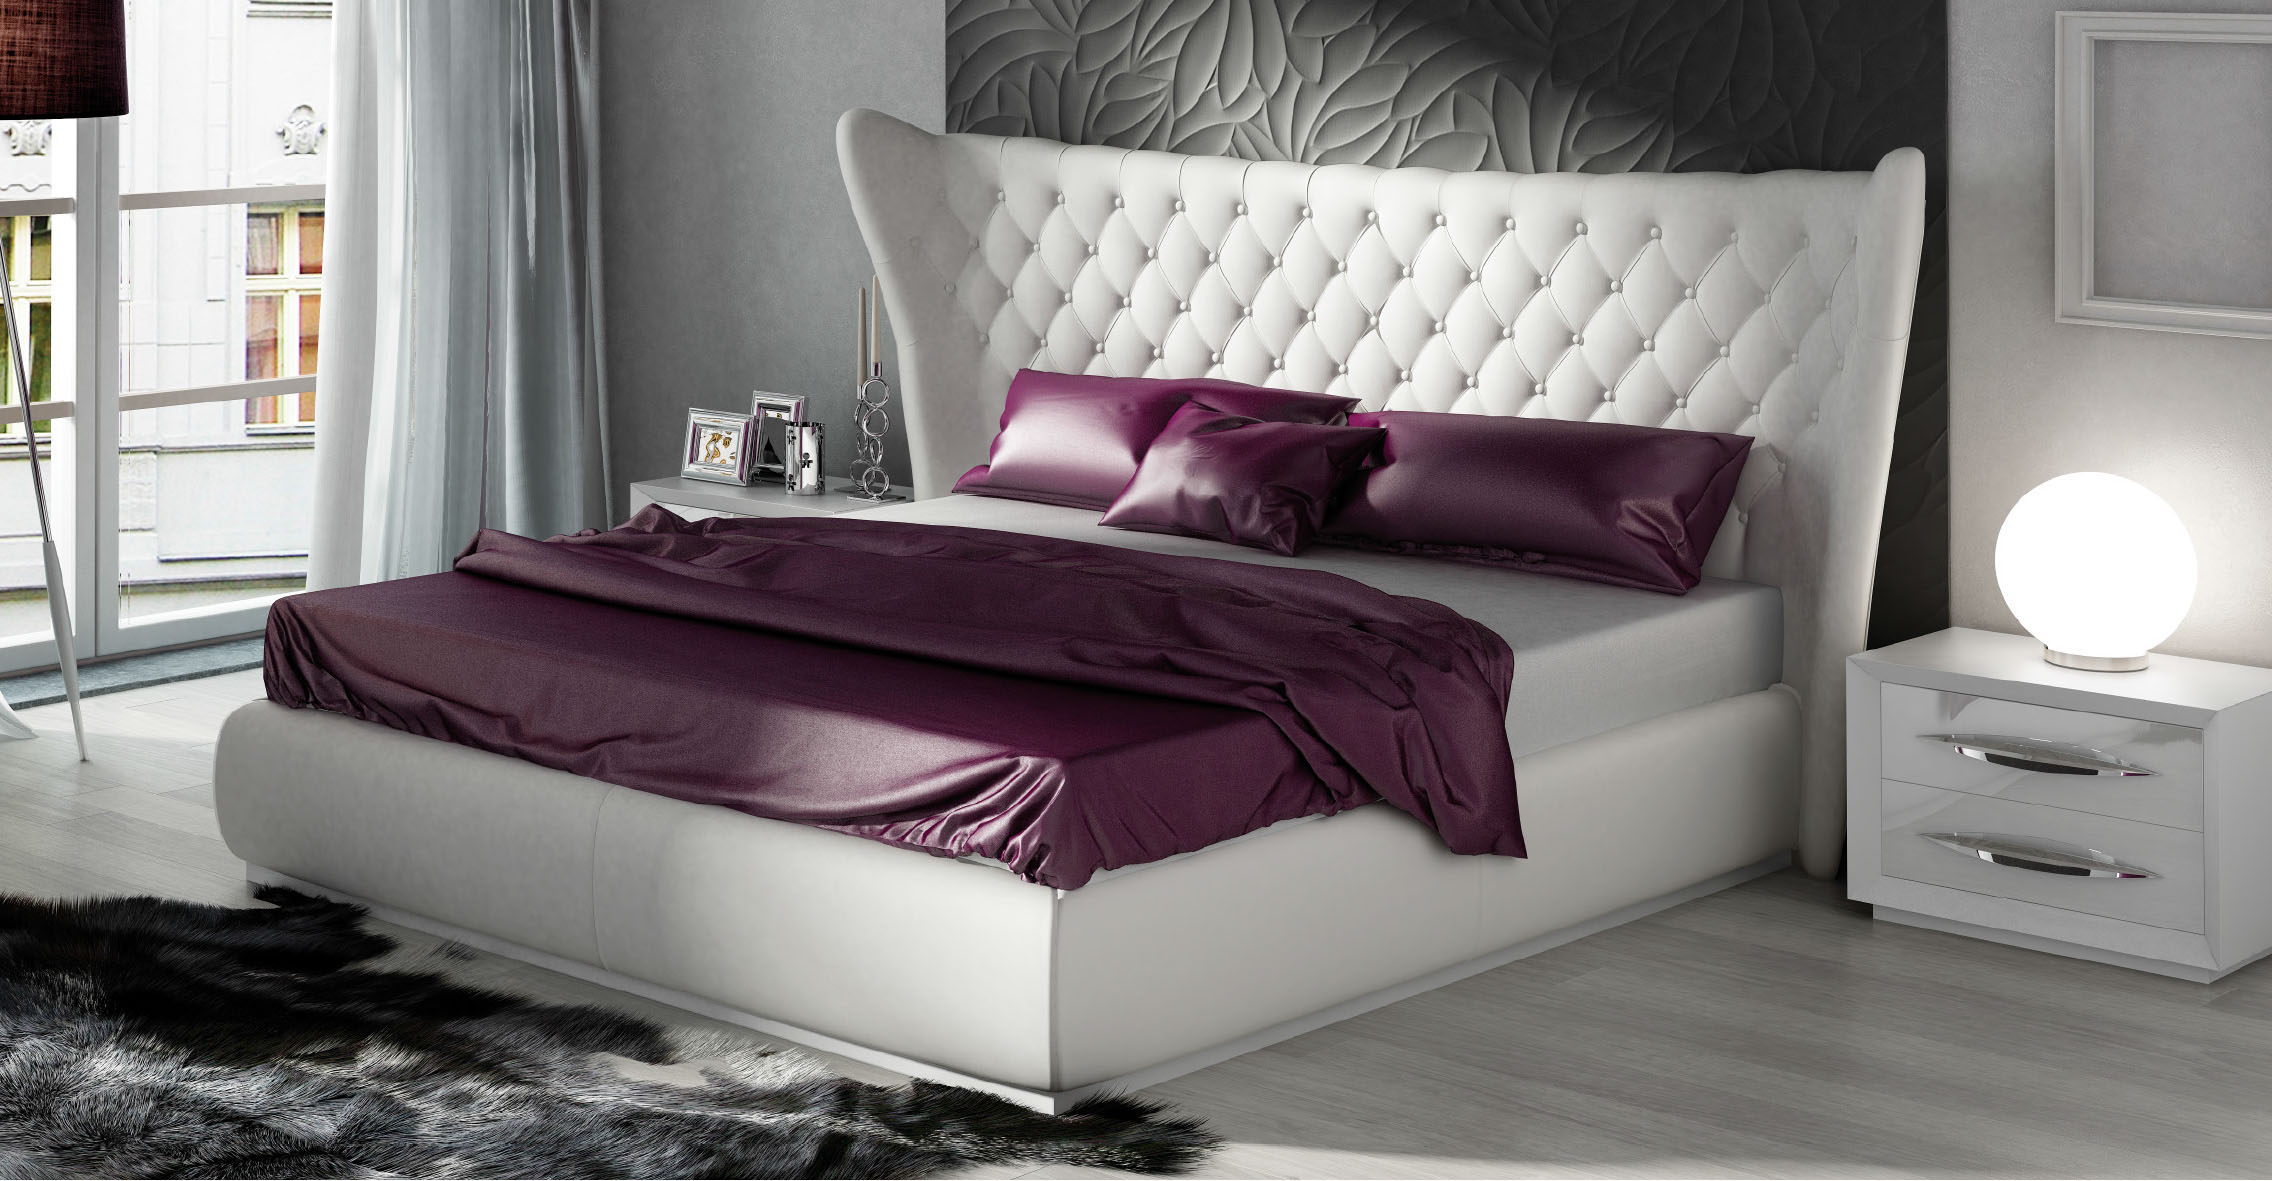 Bedroom Furniture Modern Bedrooms Miami Bedgroup